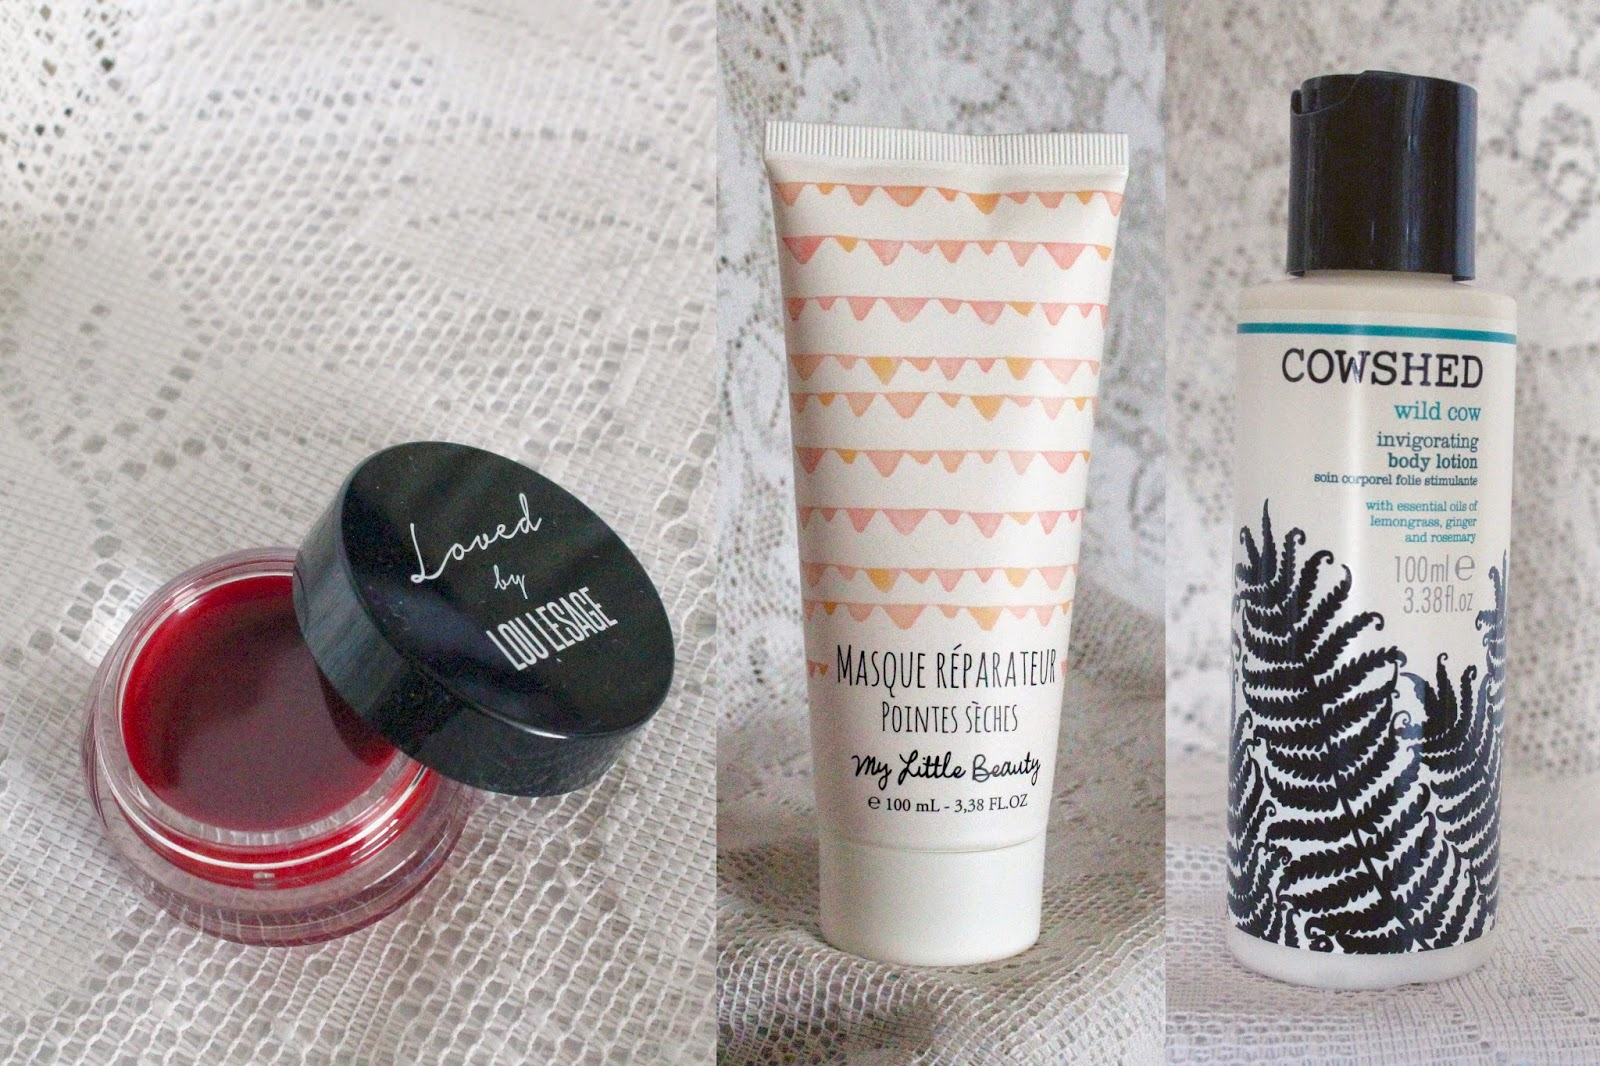 mylittlebox uk april, cowshed body lotion